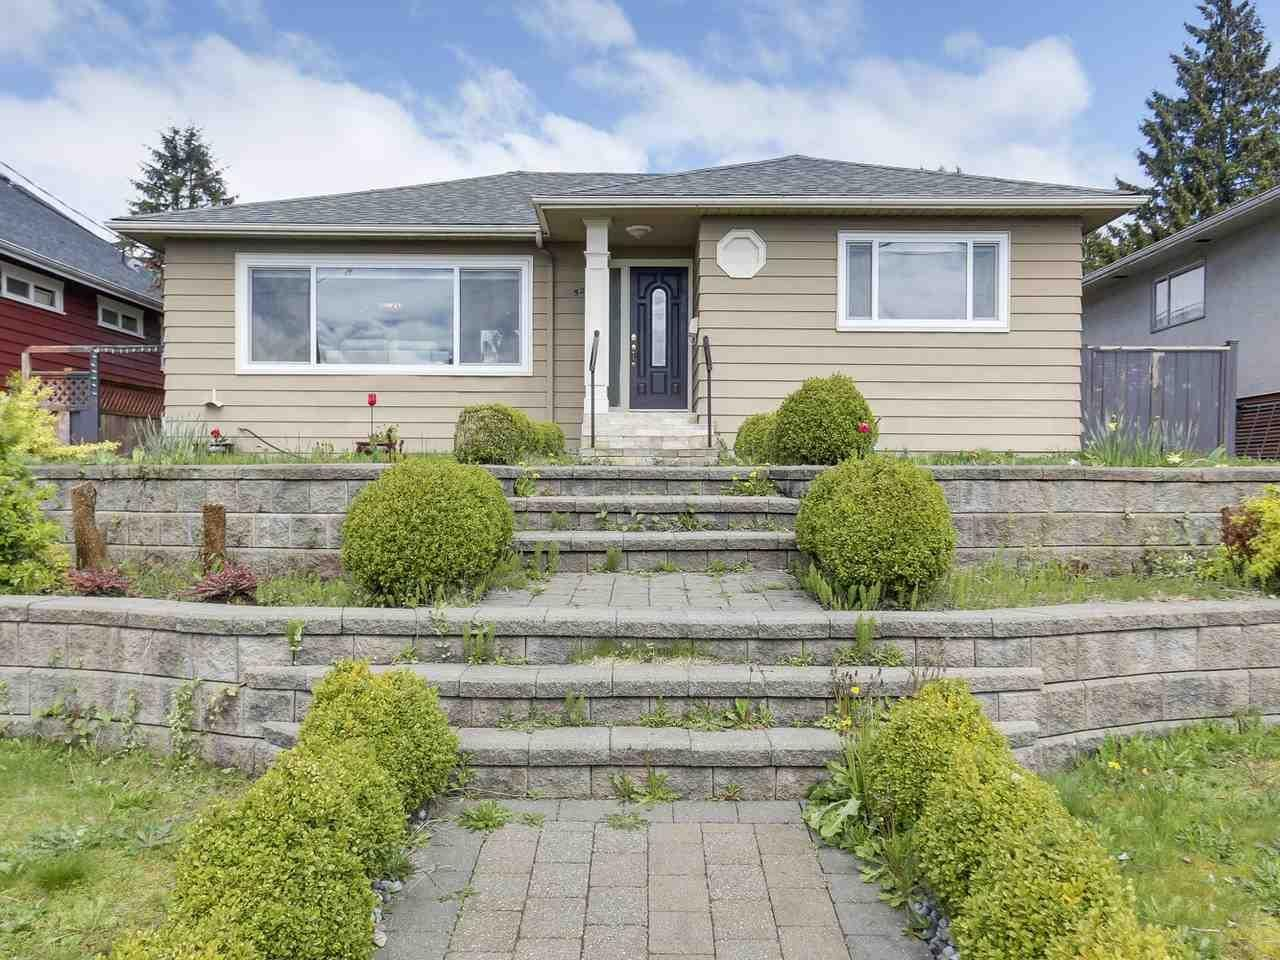 R2158966 - 522 E 7TH STREET, Lower Lonsdale, North Vancouver, BC - House/Single Family